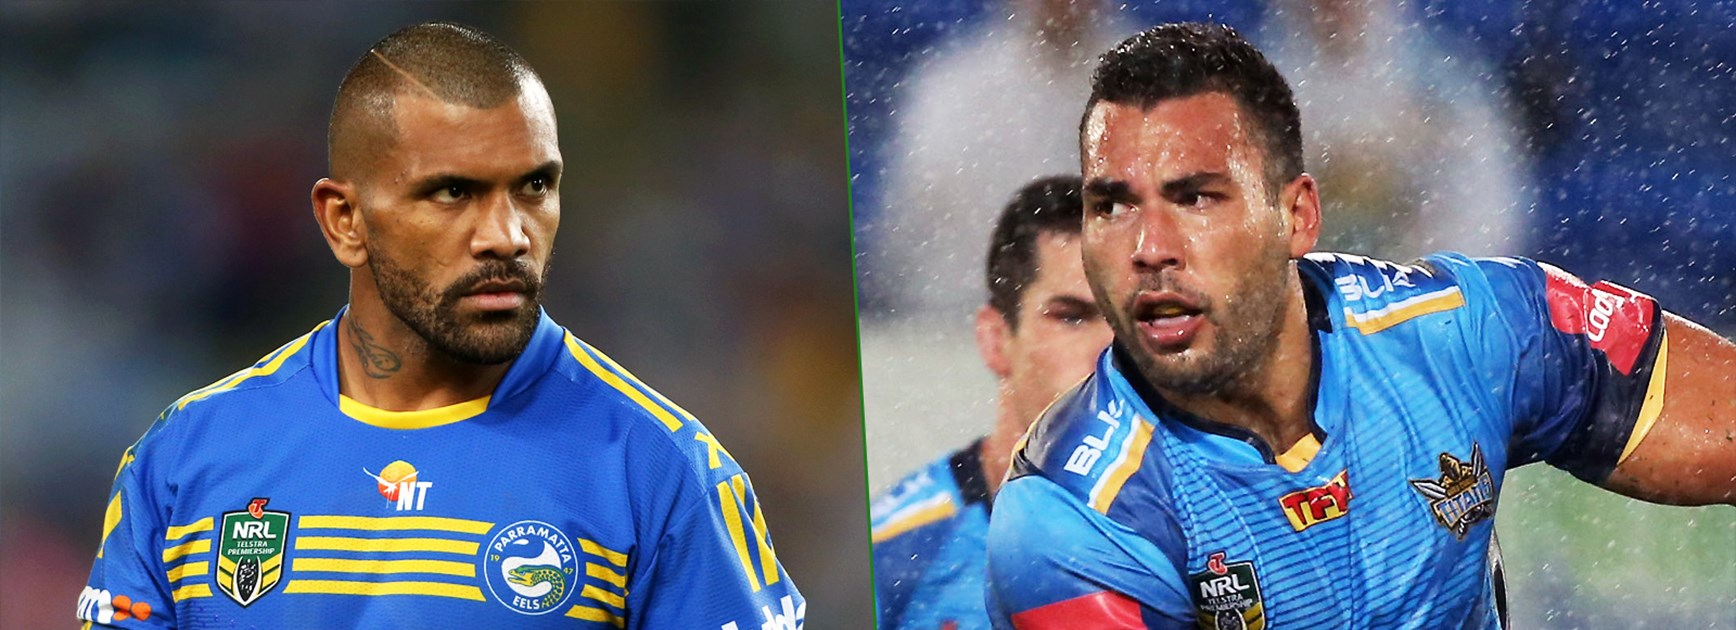 Eels enforcer Manu Ma'u and Titans forward Ryan James.